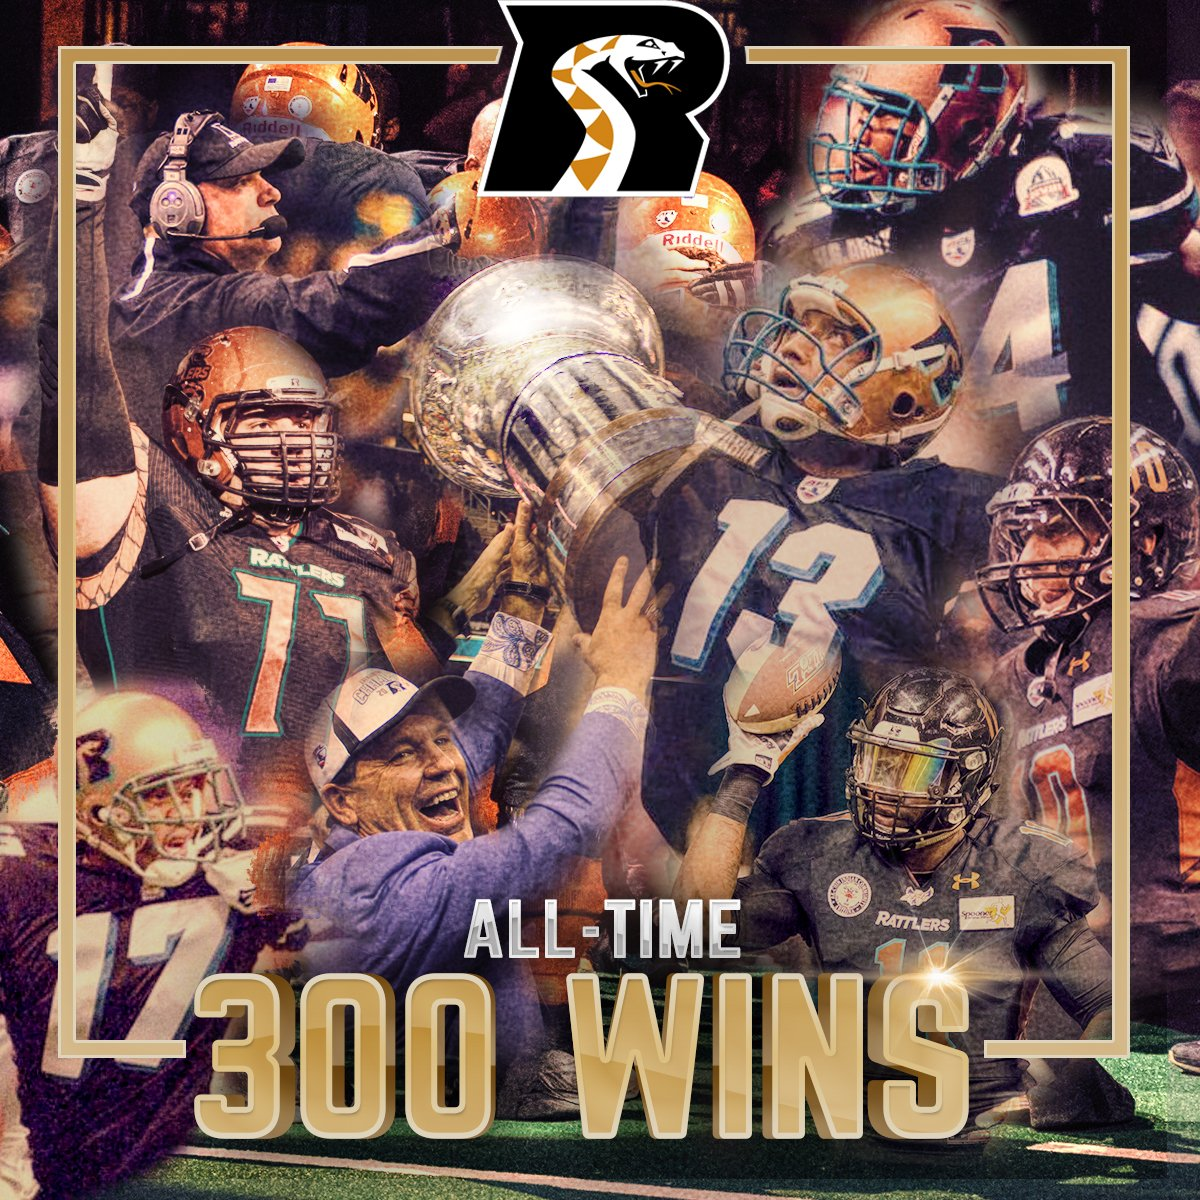 #OnThisDay in 2018: Rattlers won their 300th game in franchise history, by defeating the Cedar Rapids Titans; 84-83. https://t.co/xgP1ugqaJN